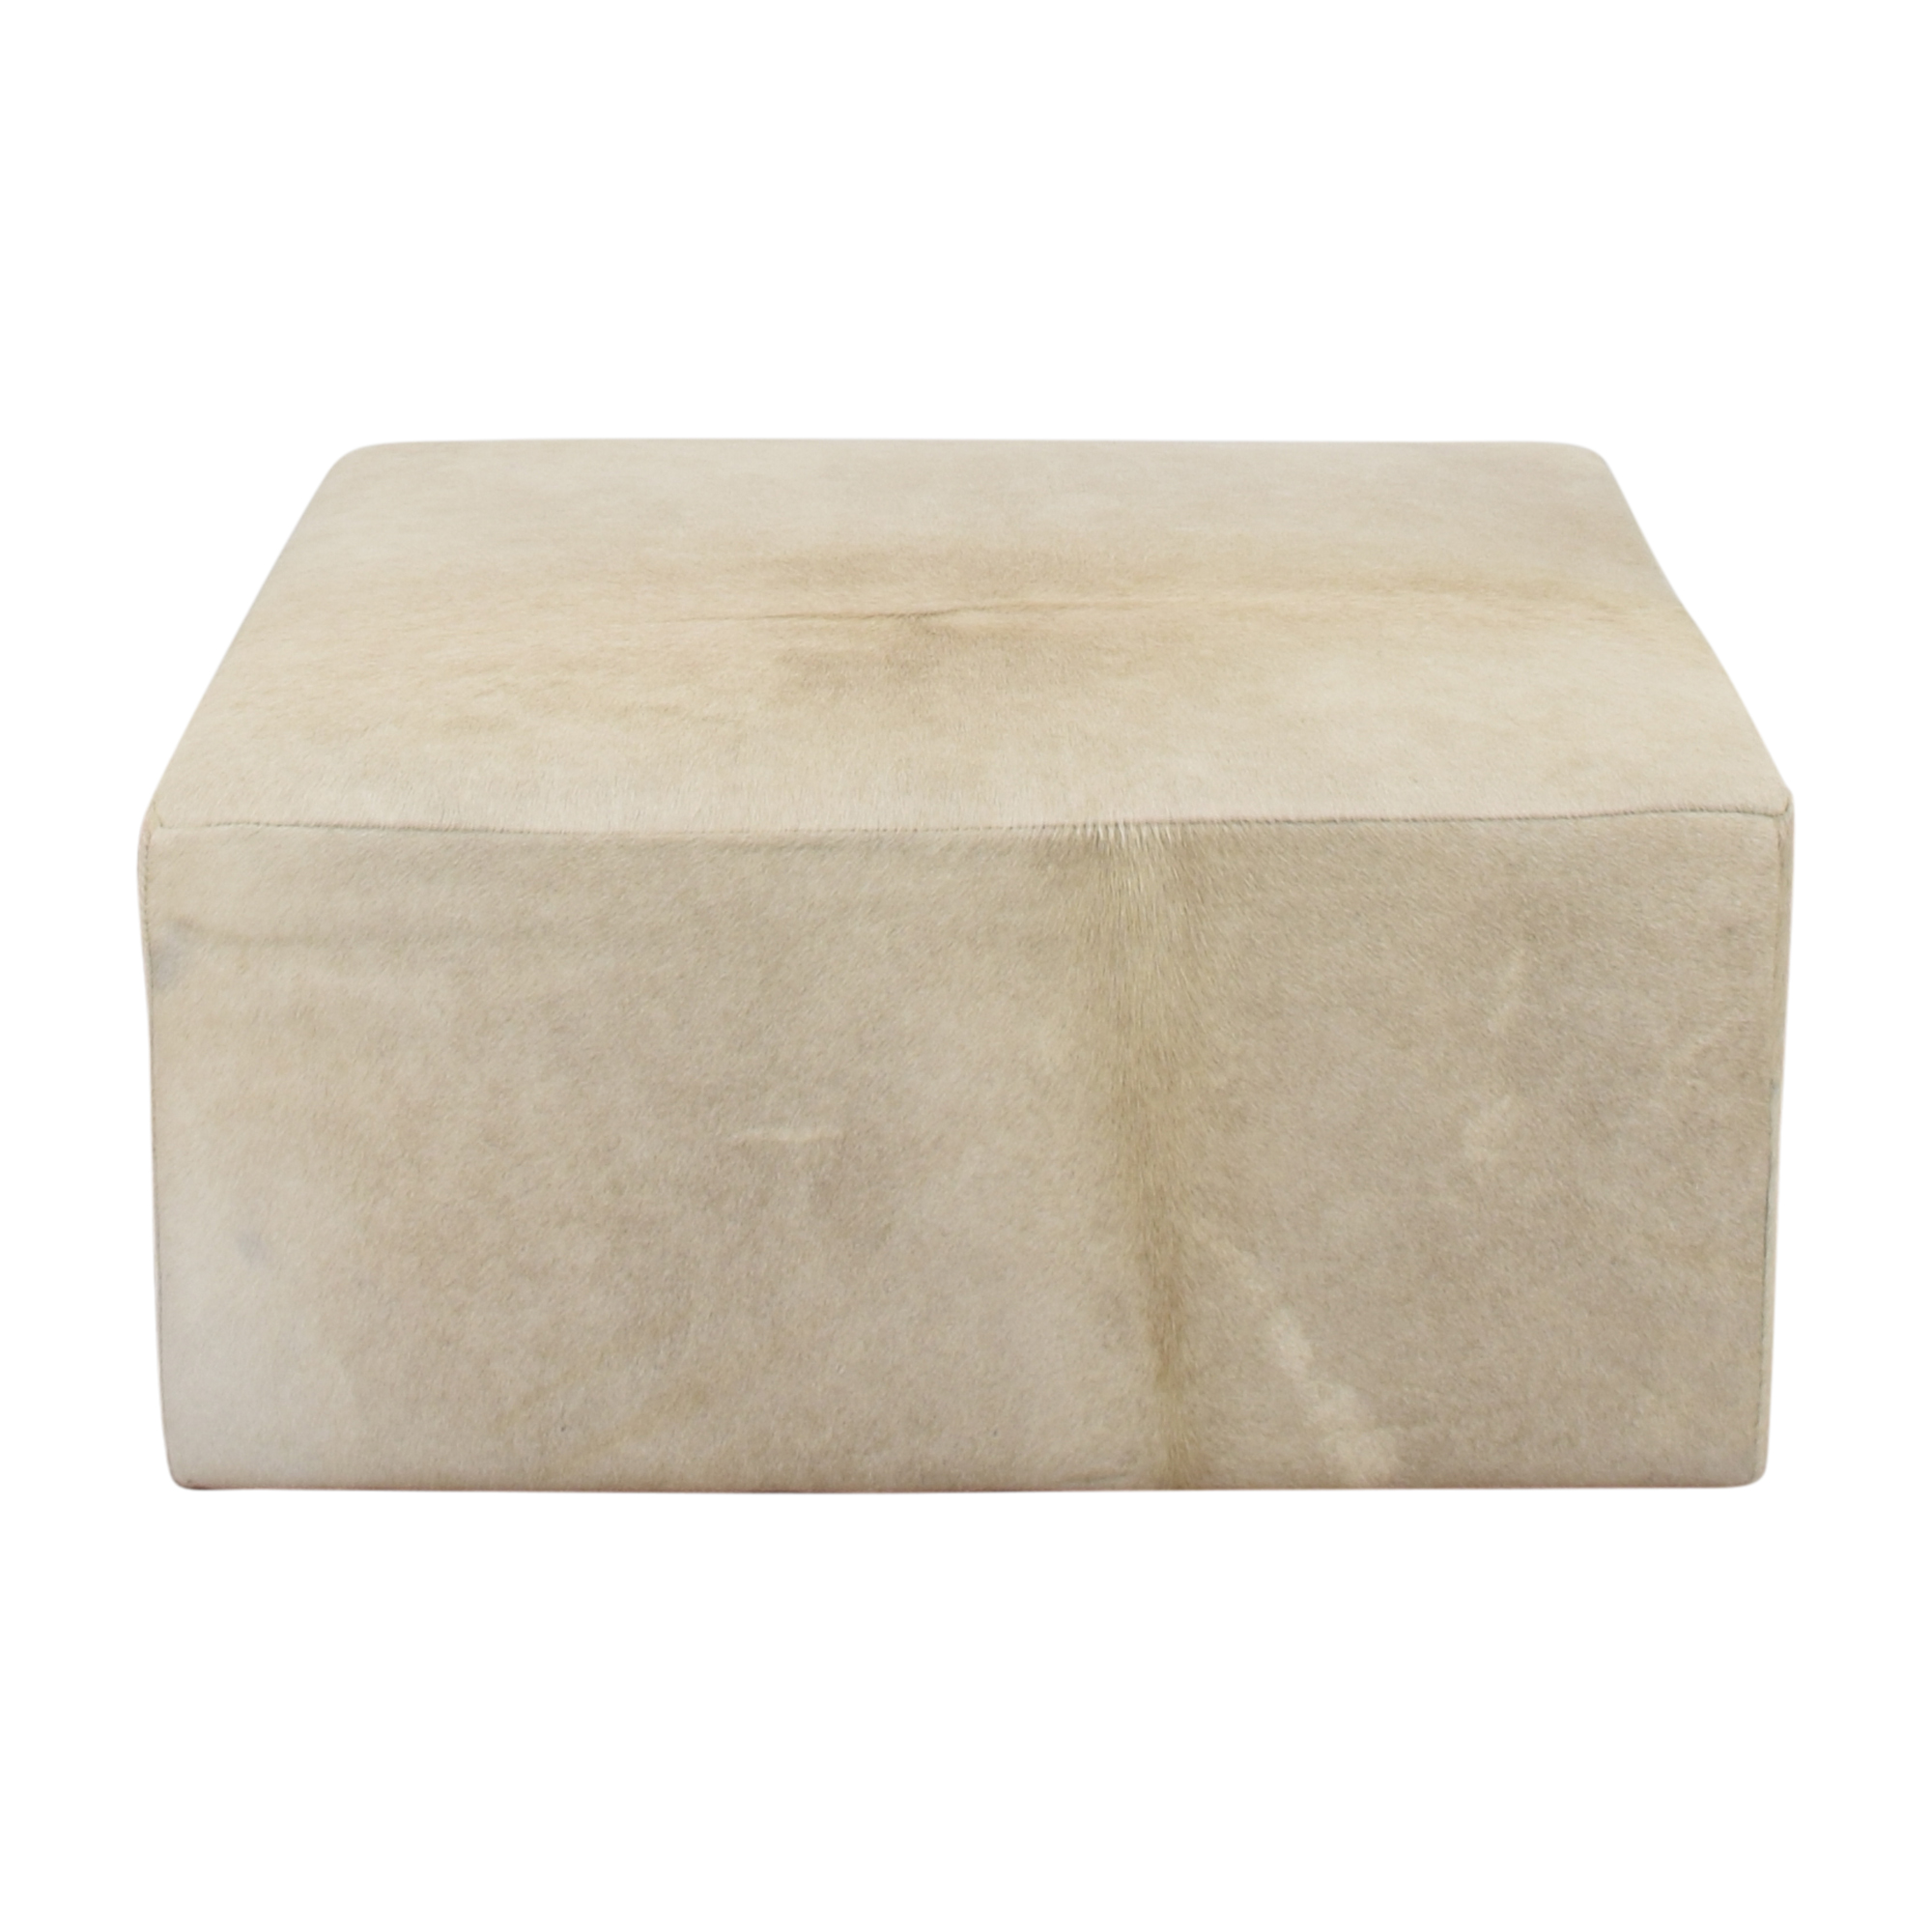 Restoration Hardware Restoration Hardware Cooper Hair-On-Hide Square Ottoman coupon